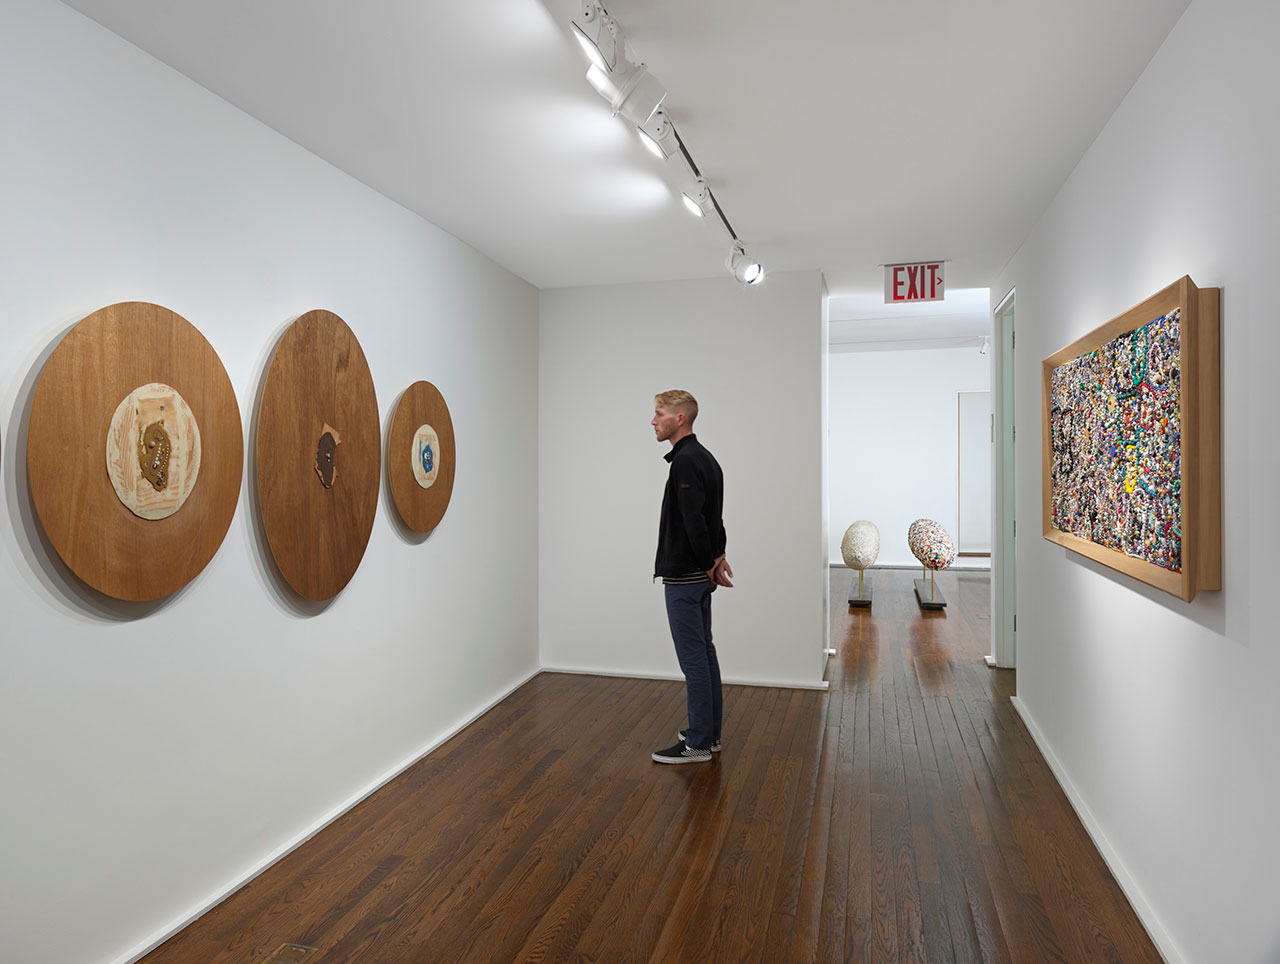 Installation view, Mike Kelley. Memory Ware, Hauser & Wirth New York, 2016. Art © Mike Kelley Foundation for the Arts. All Rights Reserved / Licensed by VAGA, New York, NY. Courtesy the Foundation and Hauser & Wirth. Photo by Genevieve Hanson.